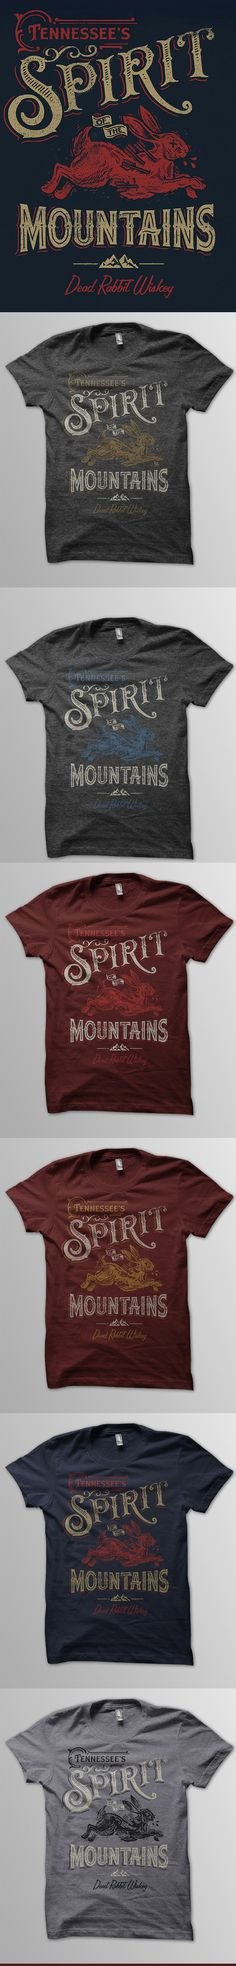 Spirit mountains tee mocks list #type #design #vintage #texture